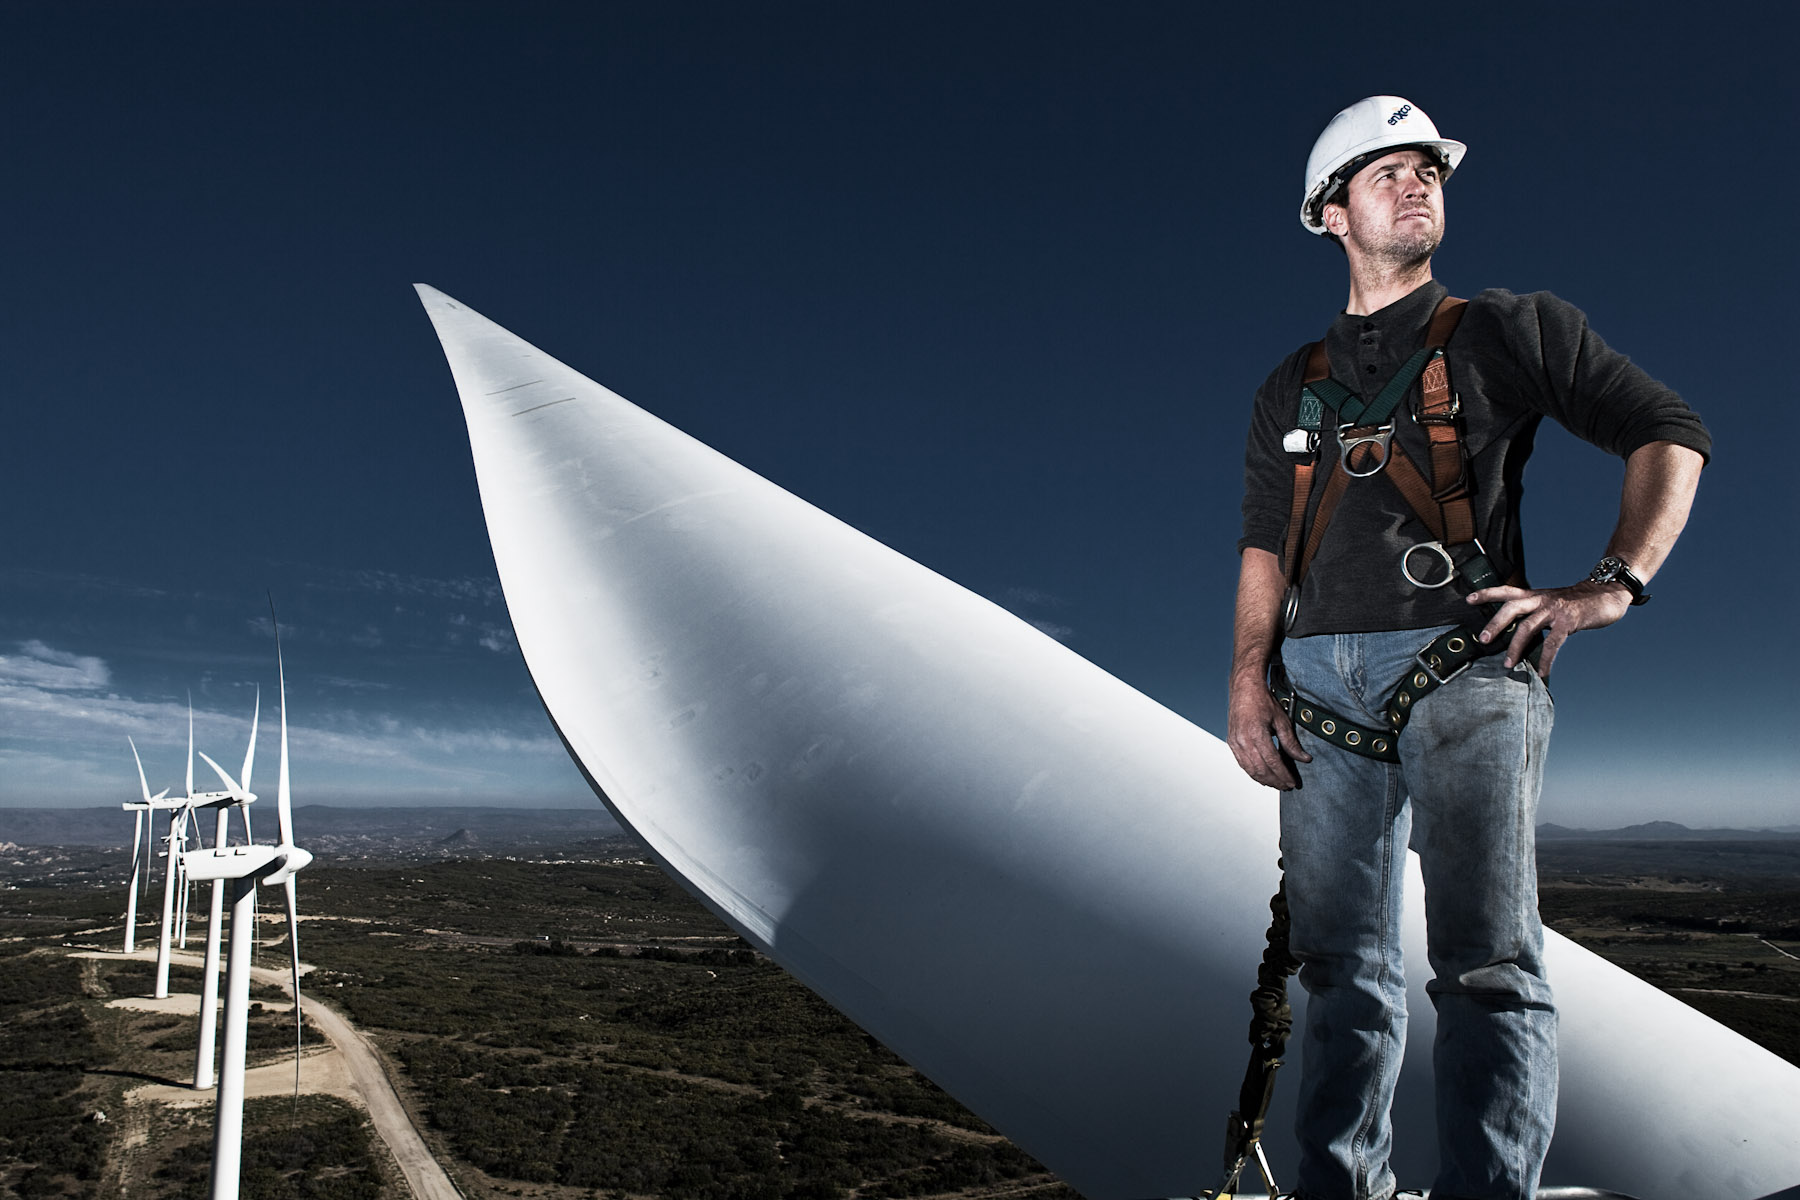 Windmill operator, environmental portrait, San Diego, California